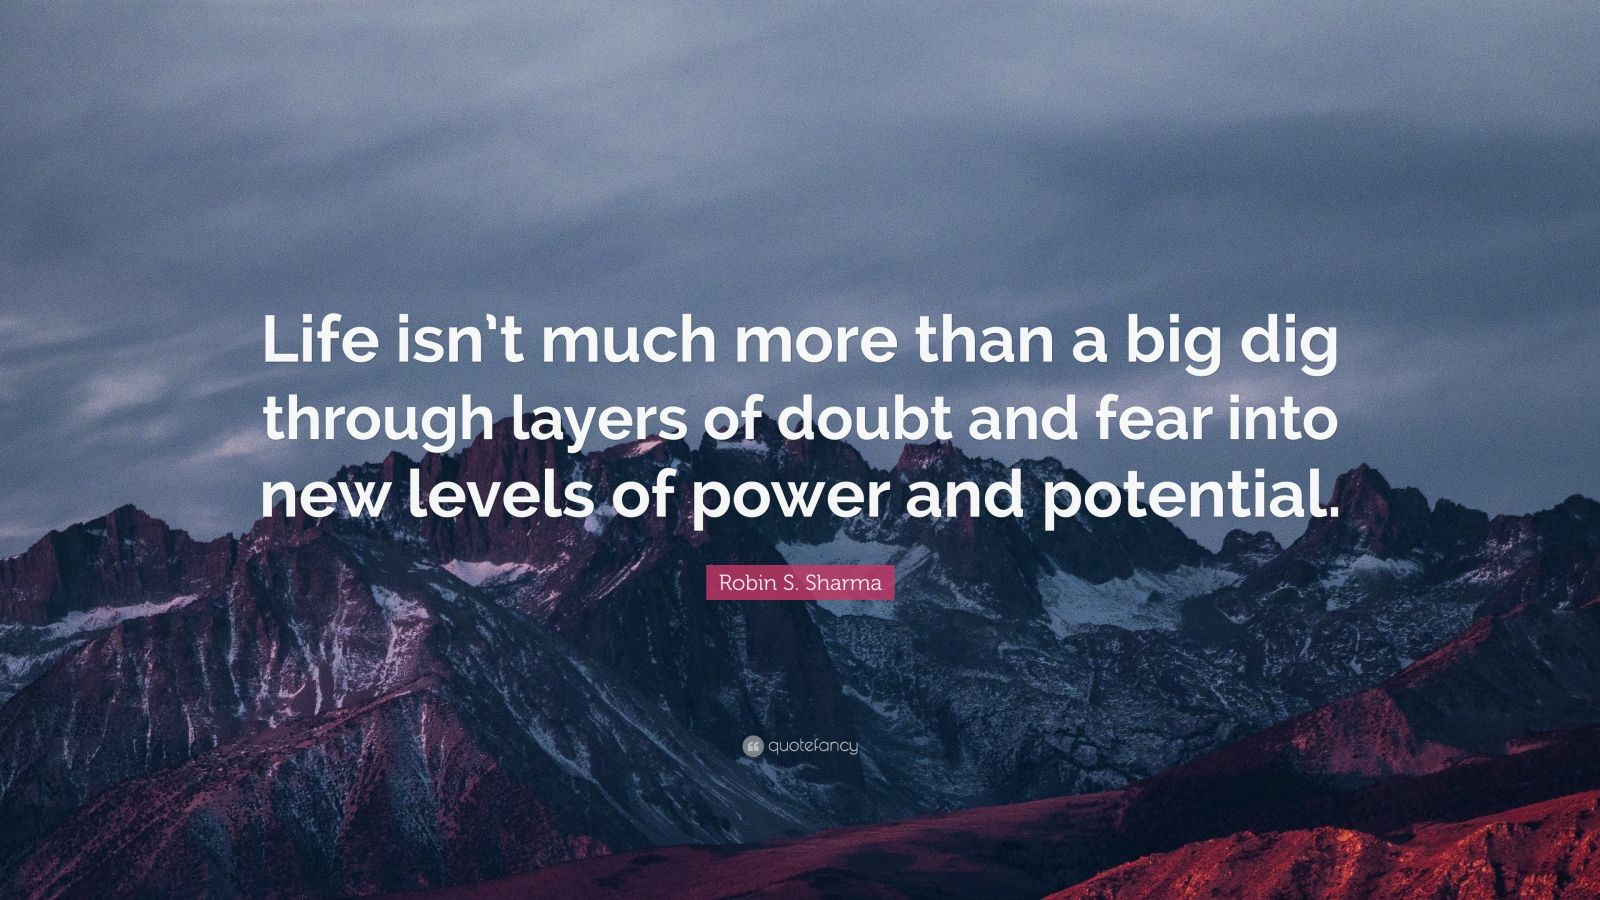 """Robin S. Sharma Quote: """"Life isn't much more than a big dig through layers of doubt and fear into new levels of power and potential."""""""